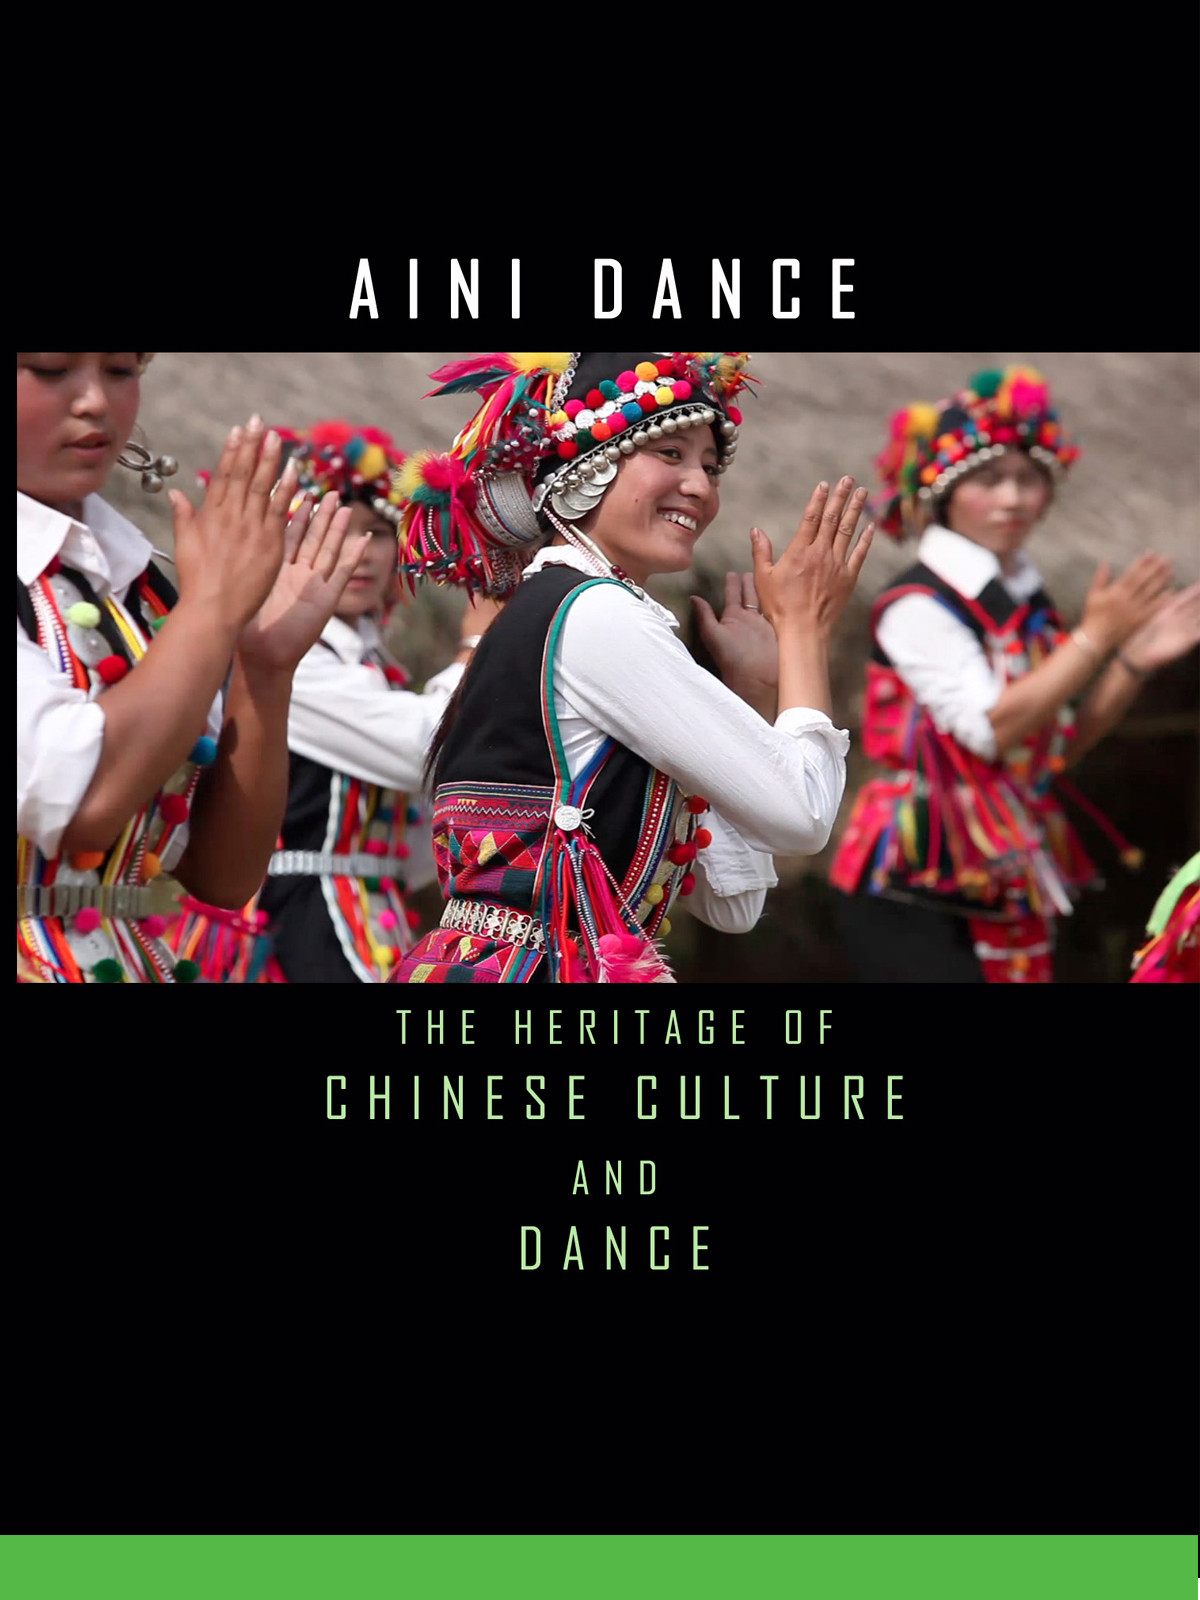 T8924 - The Heritage of Chinese Culture and Dance Ethnic Dance-Aini